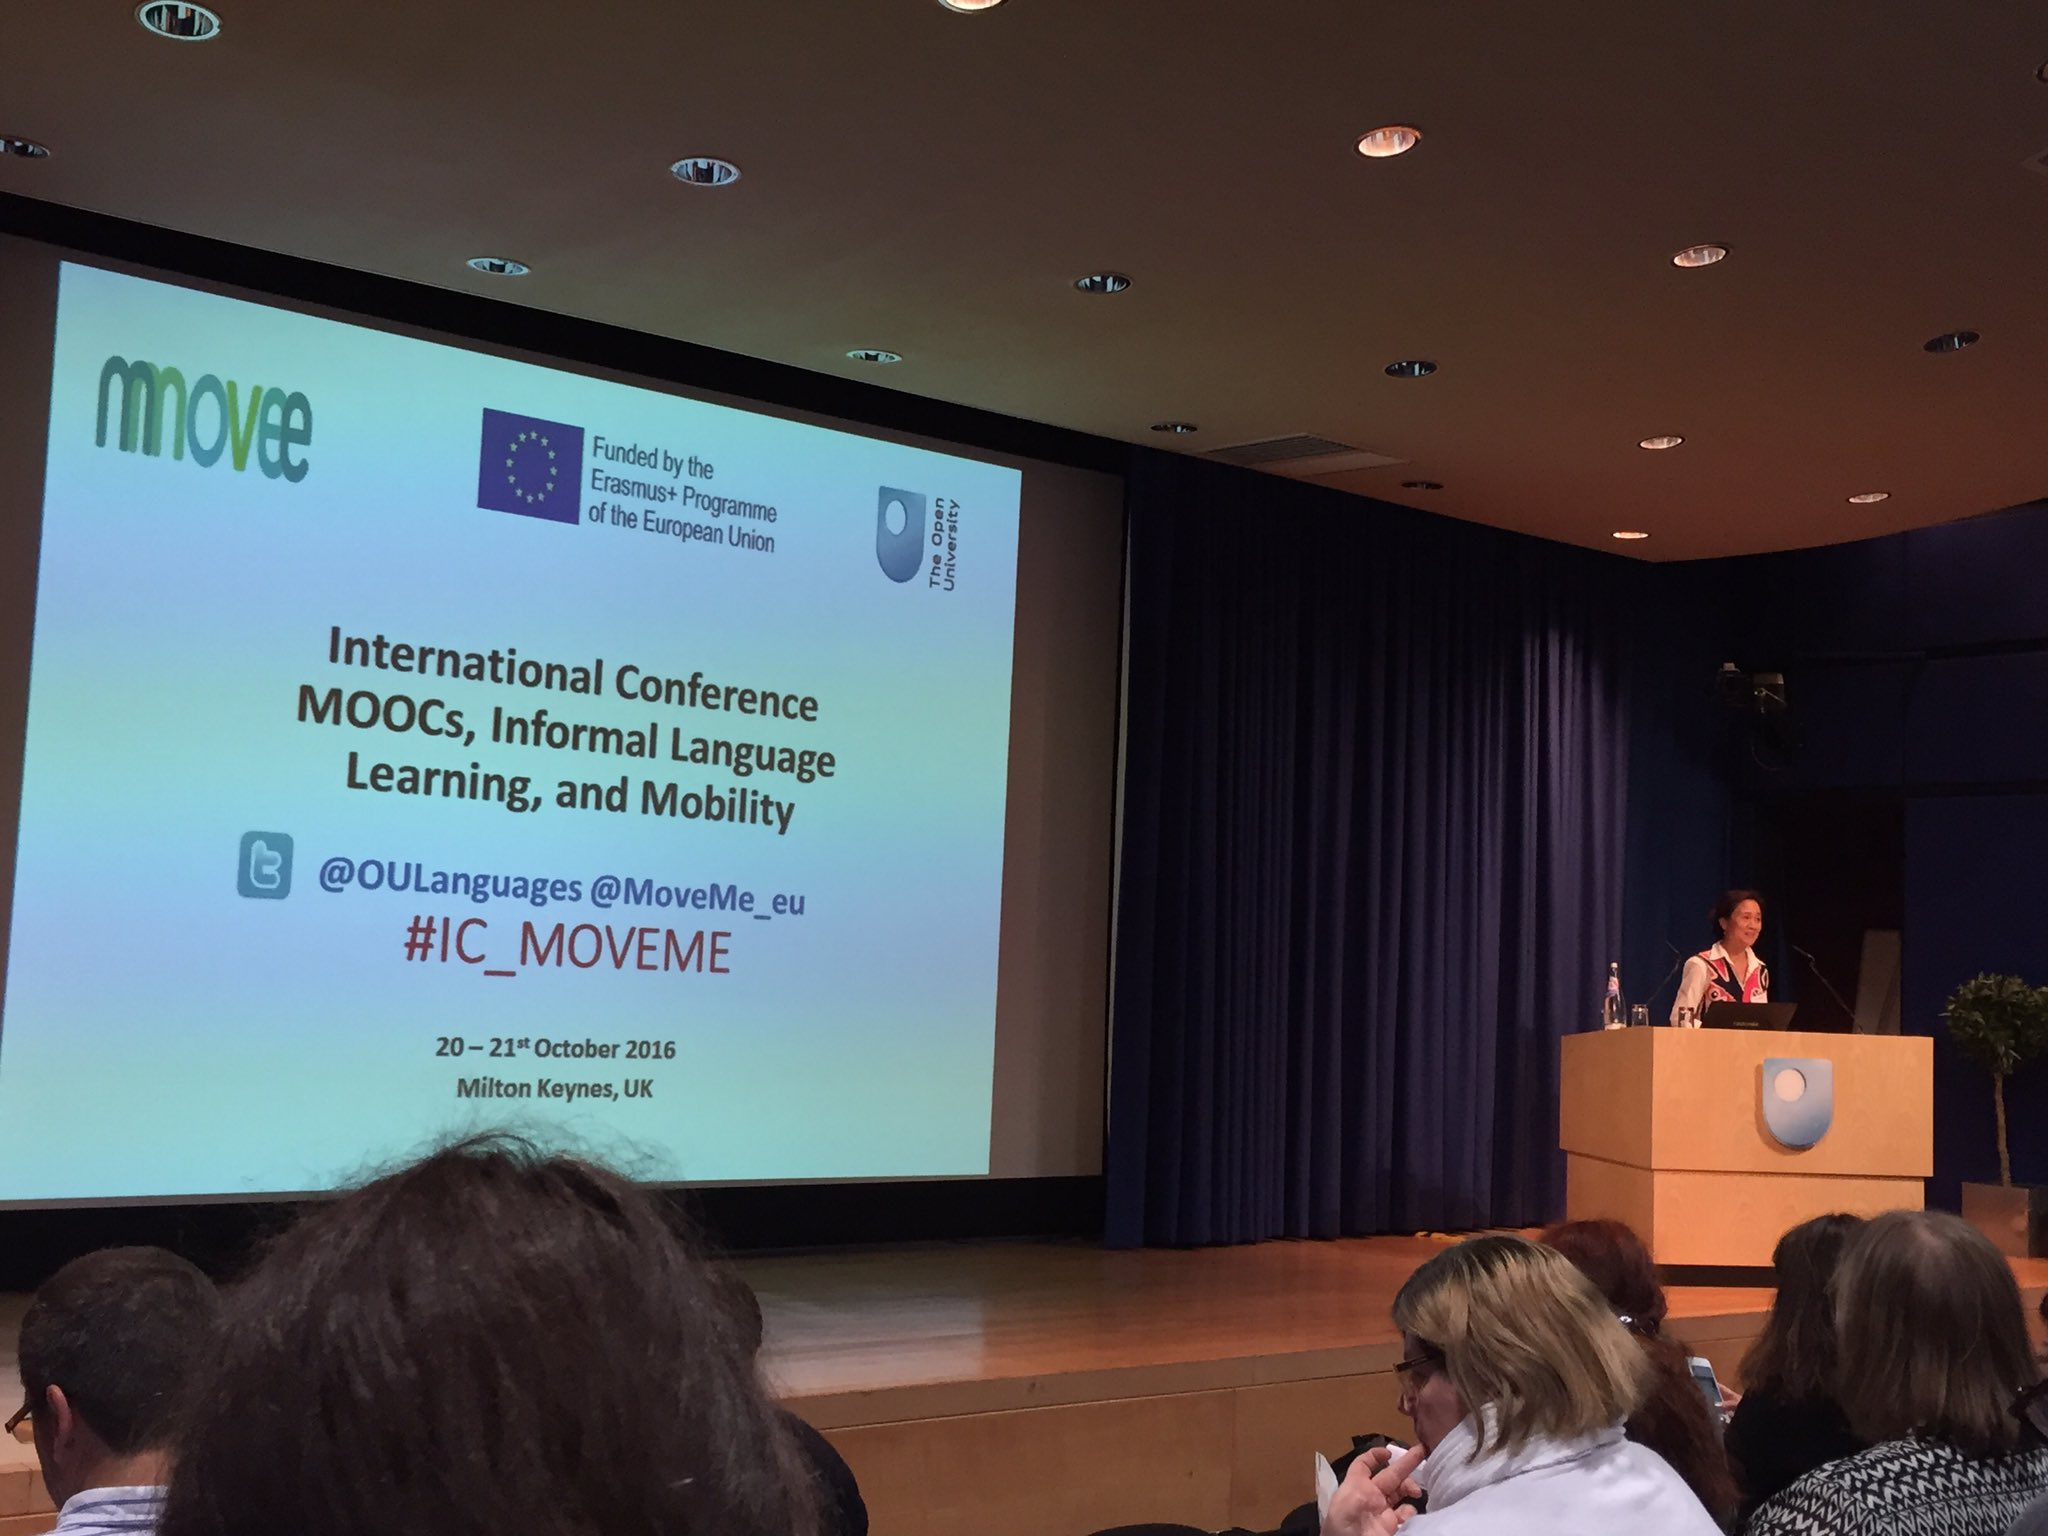 .@DrKanQian welcomes attendees to the @MoveMe_eu conference. #IC_MOVEME https://t.co/pwSVmDX7jJ